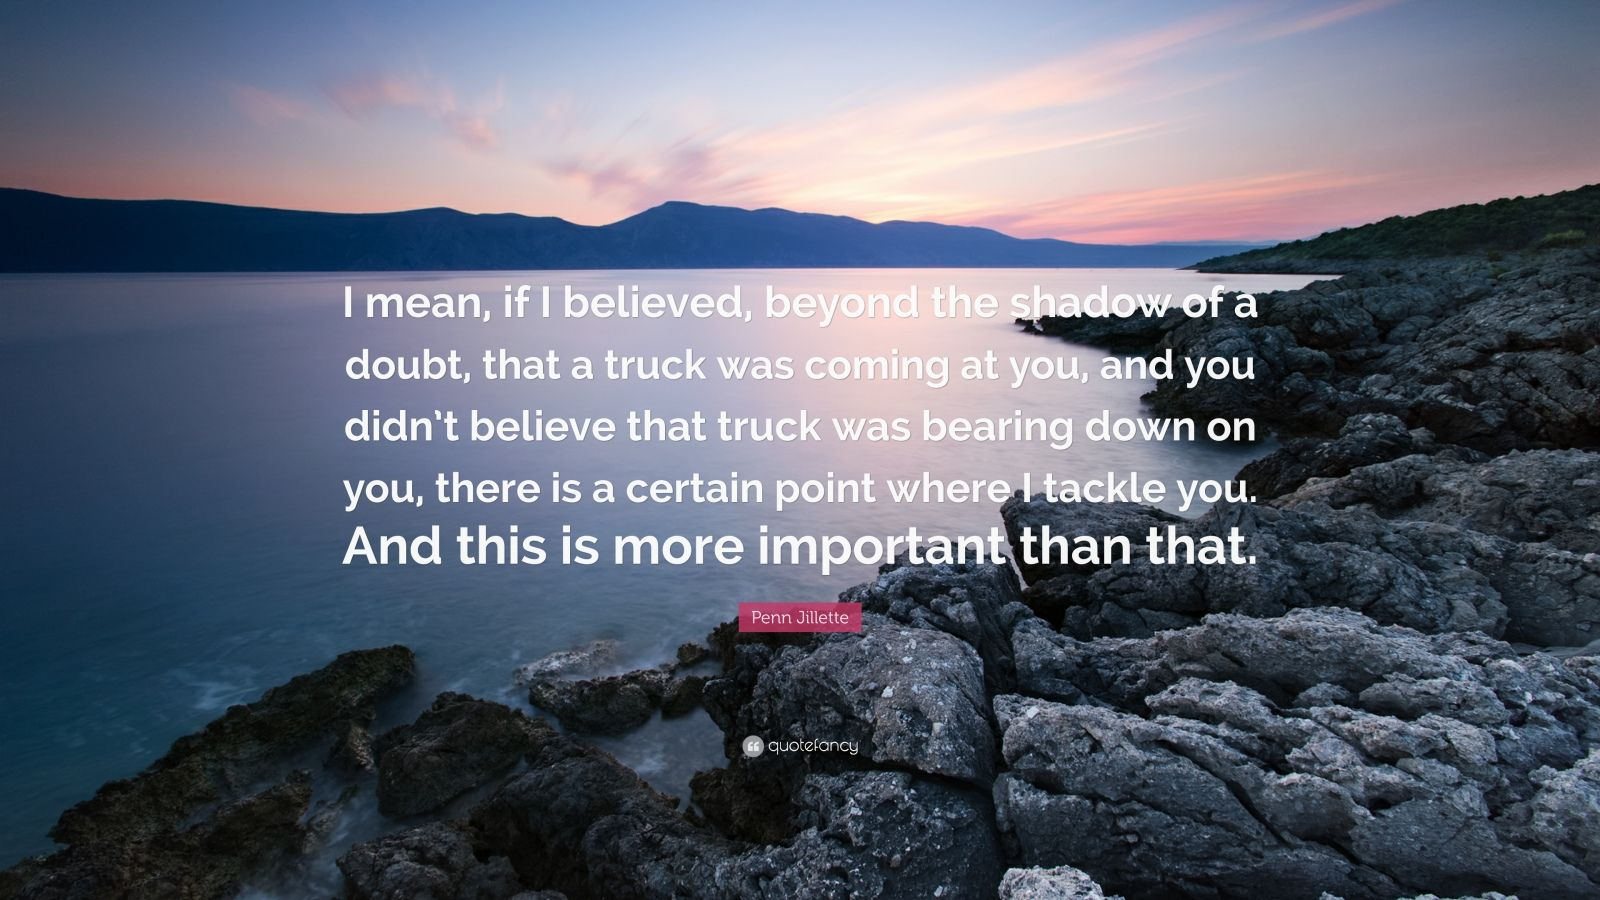 """Penn Jillette Quote: """"I mean, if I believed, beyond the shadow of a doubt, that a truck was coming at you, and you didn't believe that truck was bearing down on you, there is a certain point where I tackle you. And this is more important than that."""""""